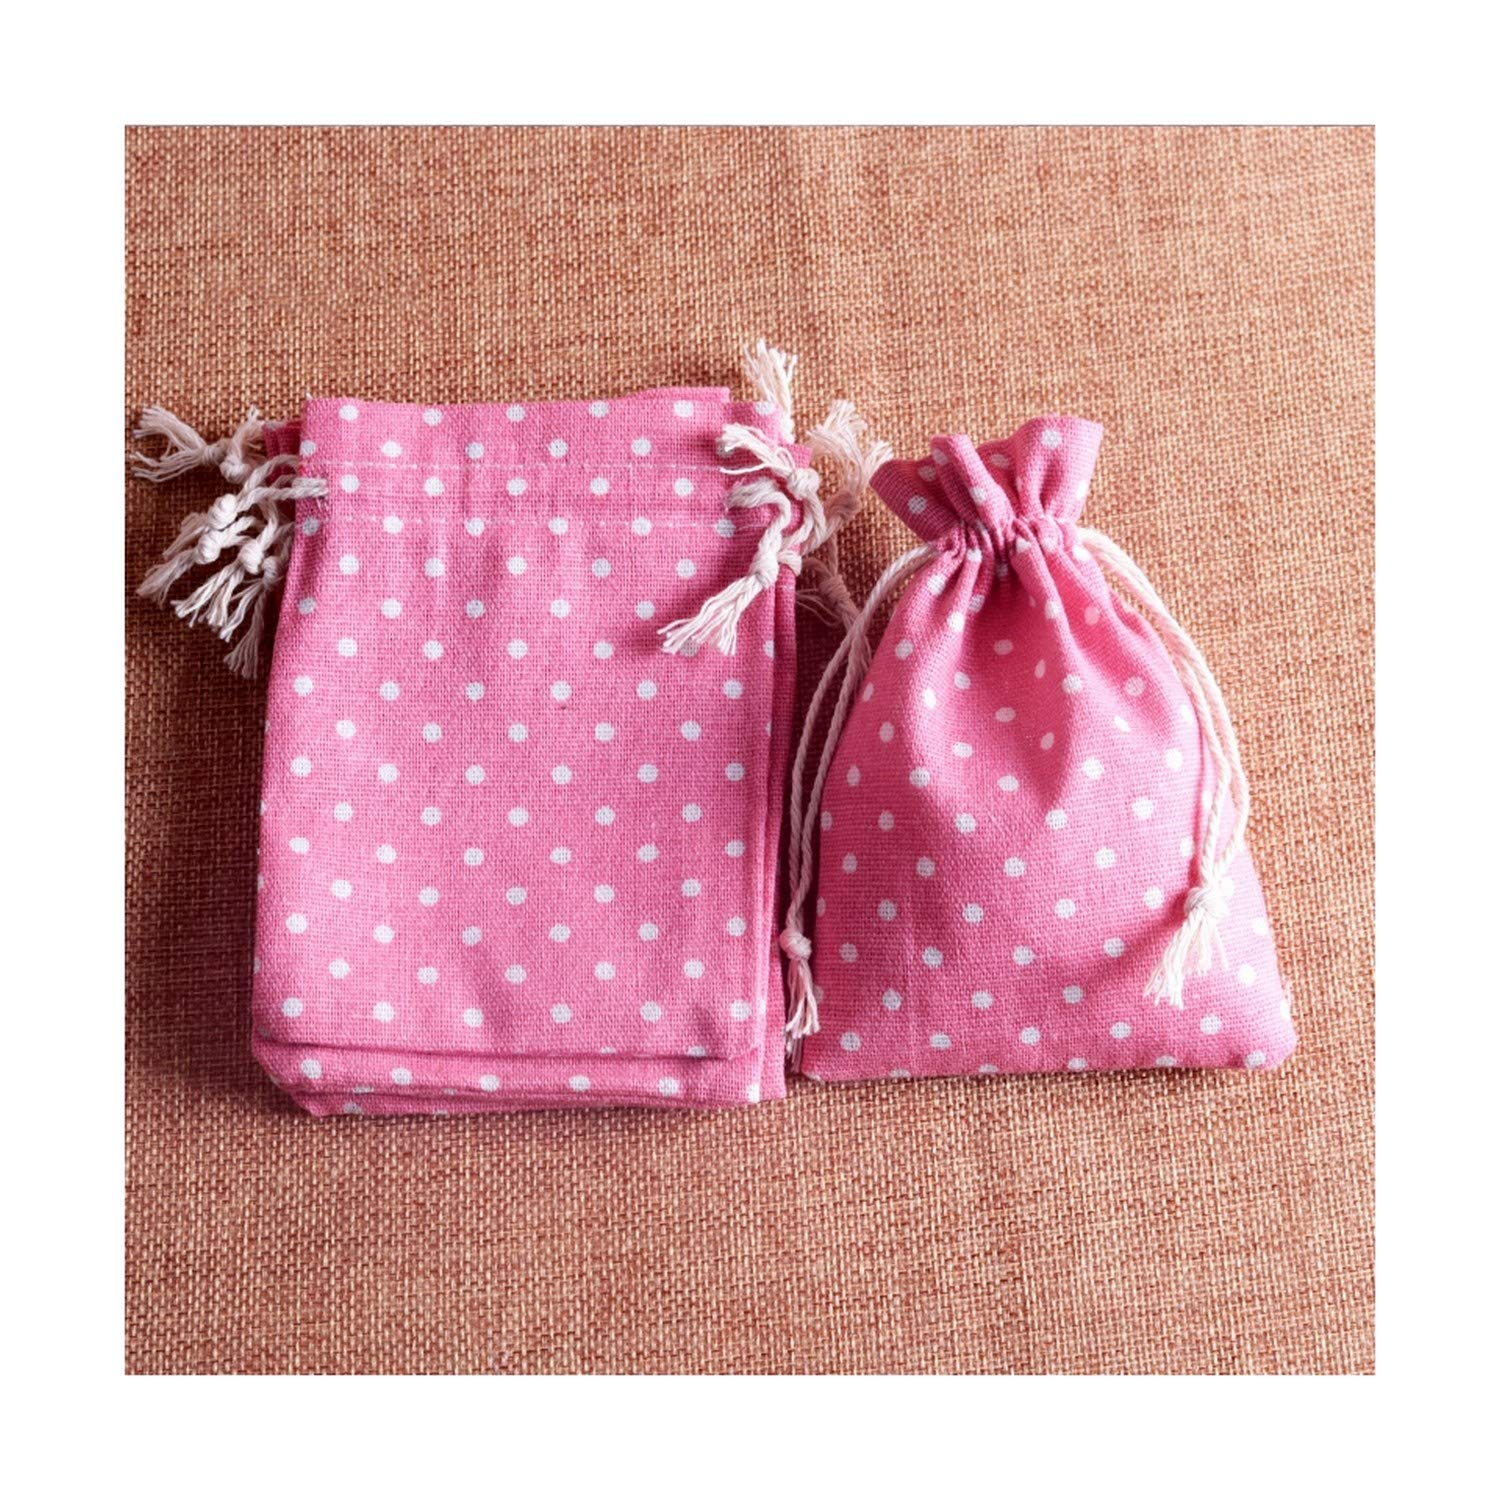 100pcs/lot Pink Cotton Gift Bags 10x14cm(3.9''x5.5'') Party Wedding Favor Bag Candy Gifts Packaging Bag Pouches